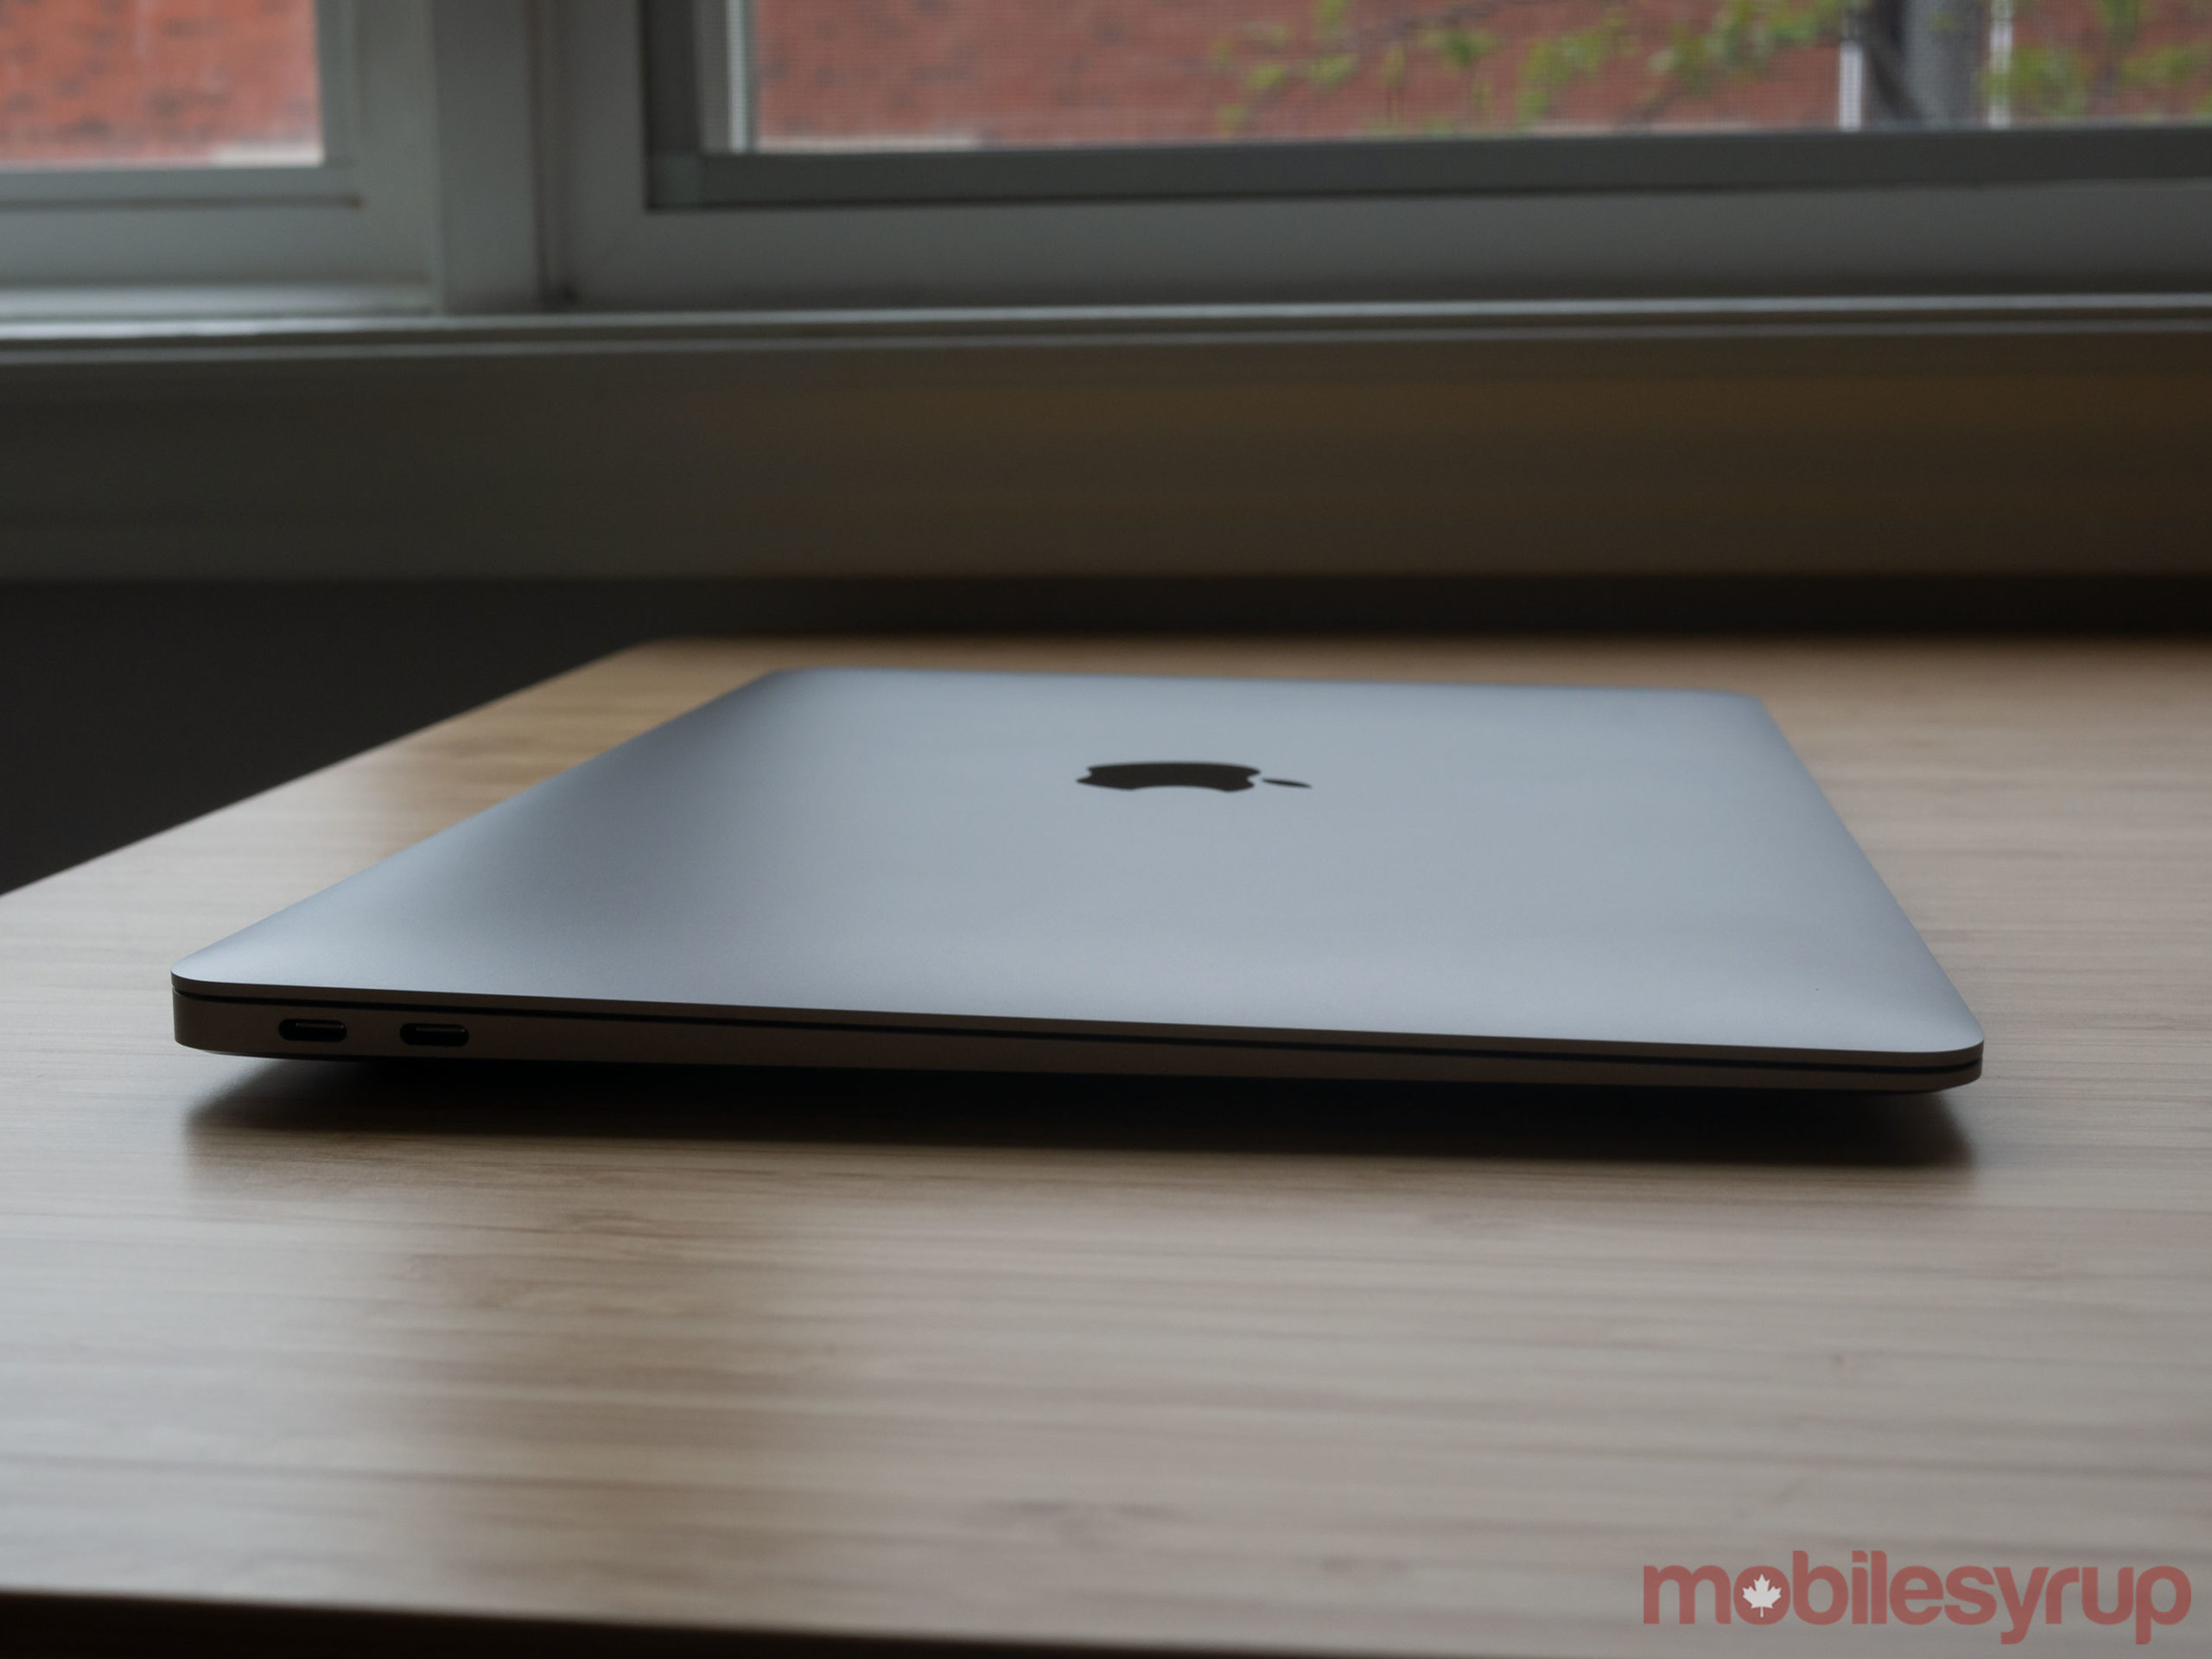 MacBook Air (2020) side